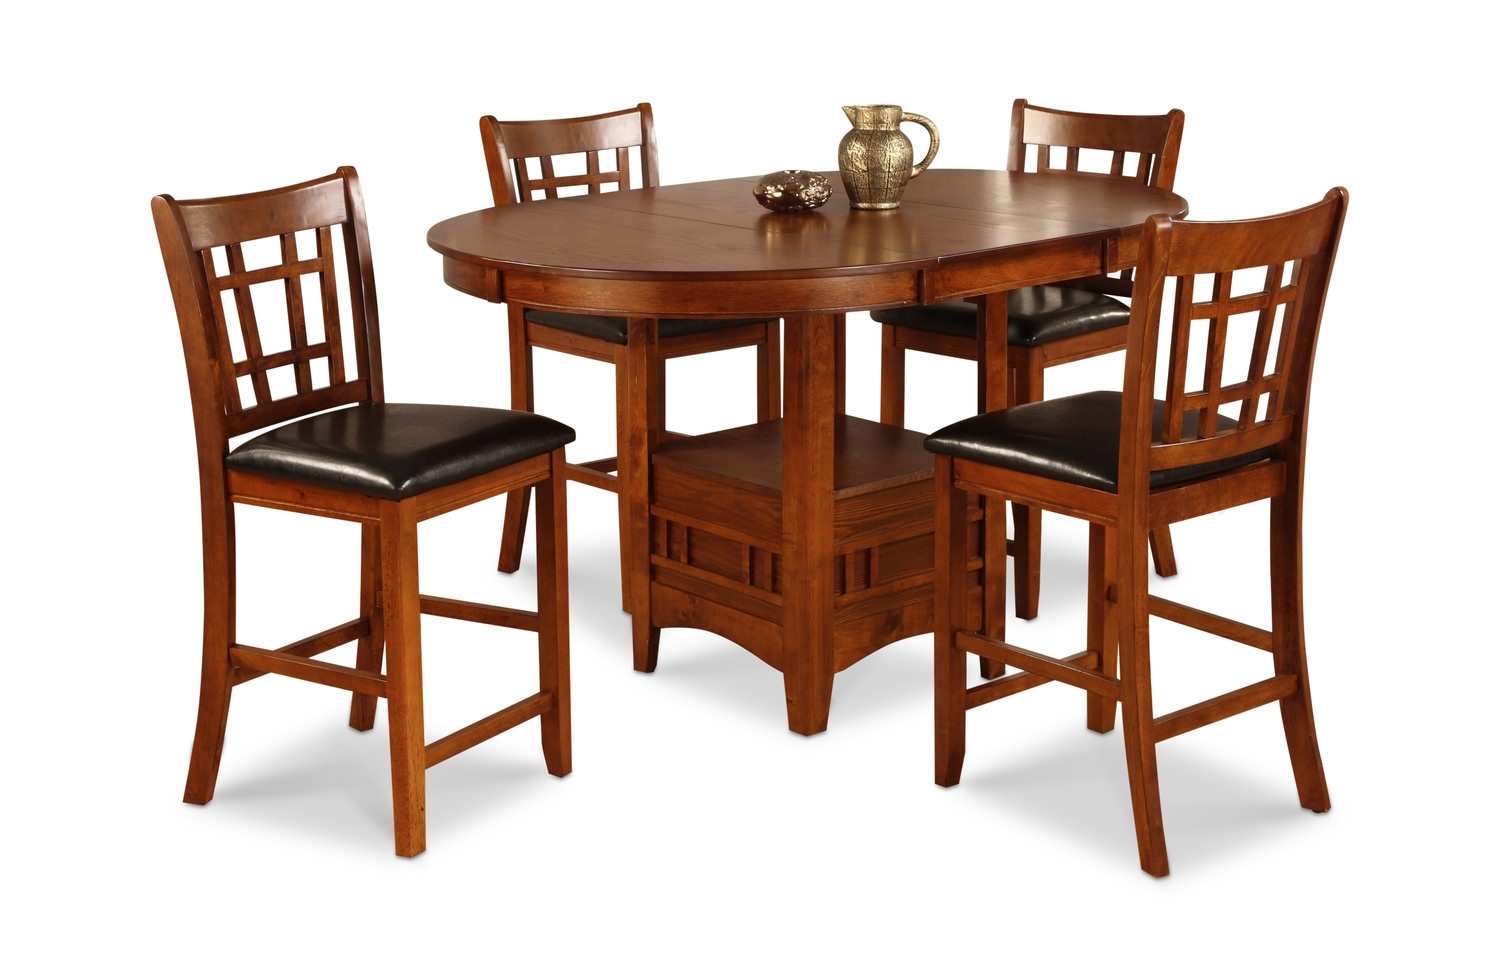 Chapleau Ii Arm Chairs Within Most Recent Dining Sets – Kitchen & Dining Room Sets – Hom Furniture (View 17 of 20)